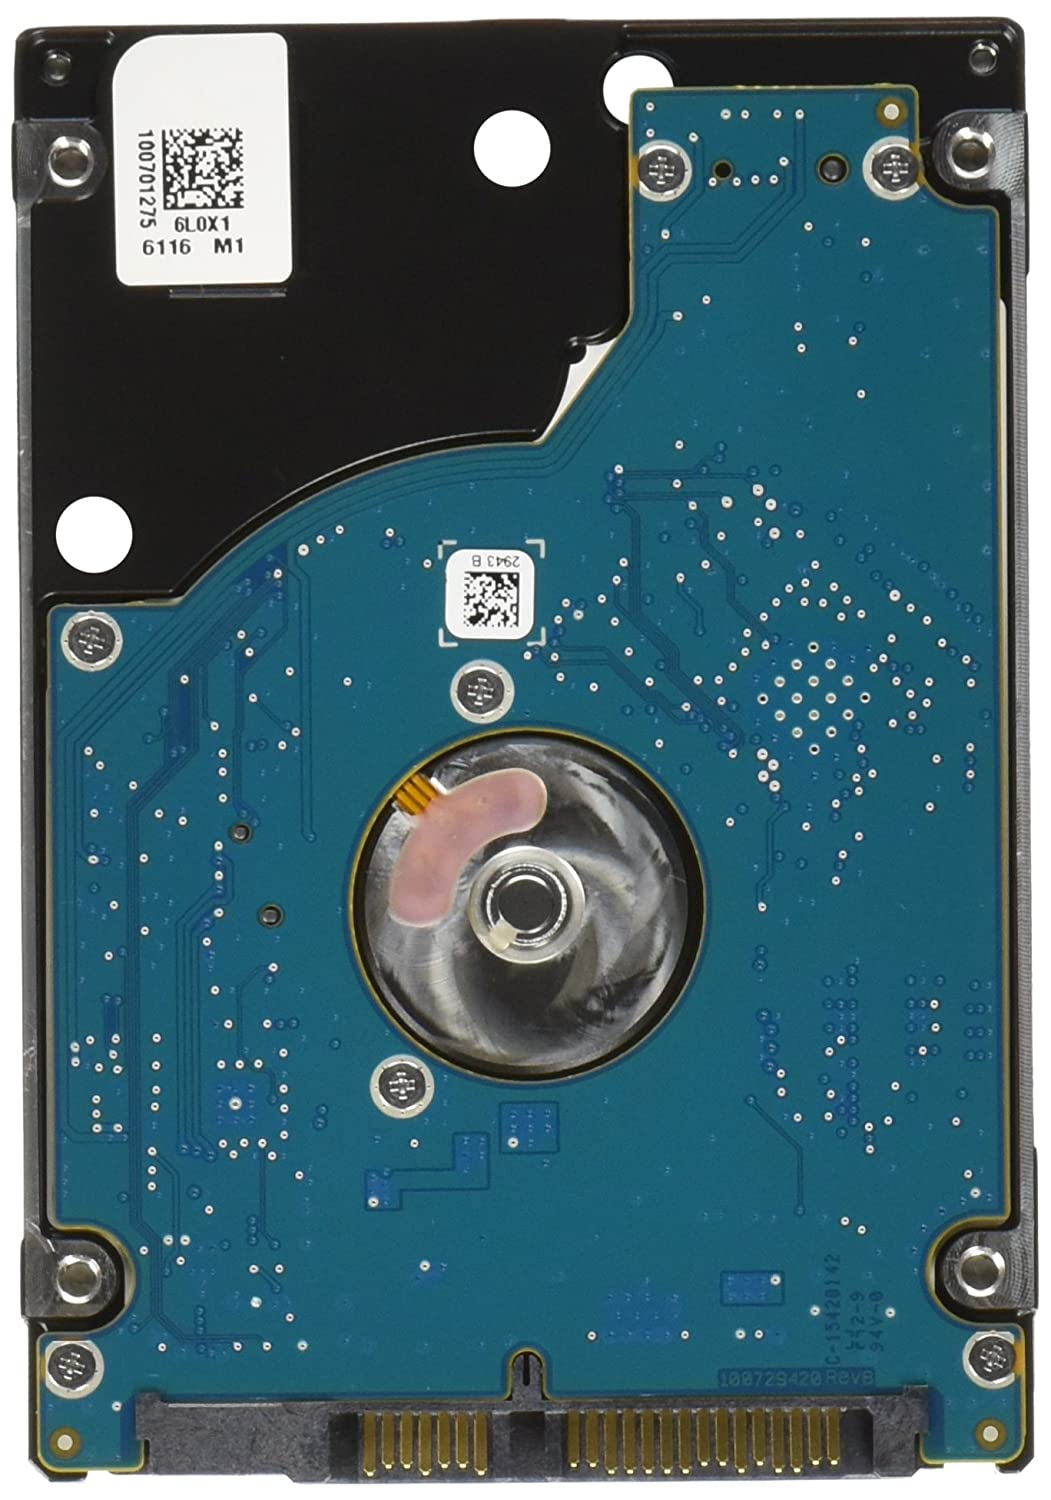 Seagate 320GB Laptop Thin SATA 6Gb/s 32MB Cache 2.5-Inch Hard Disk Drive (ST320LM010)